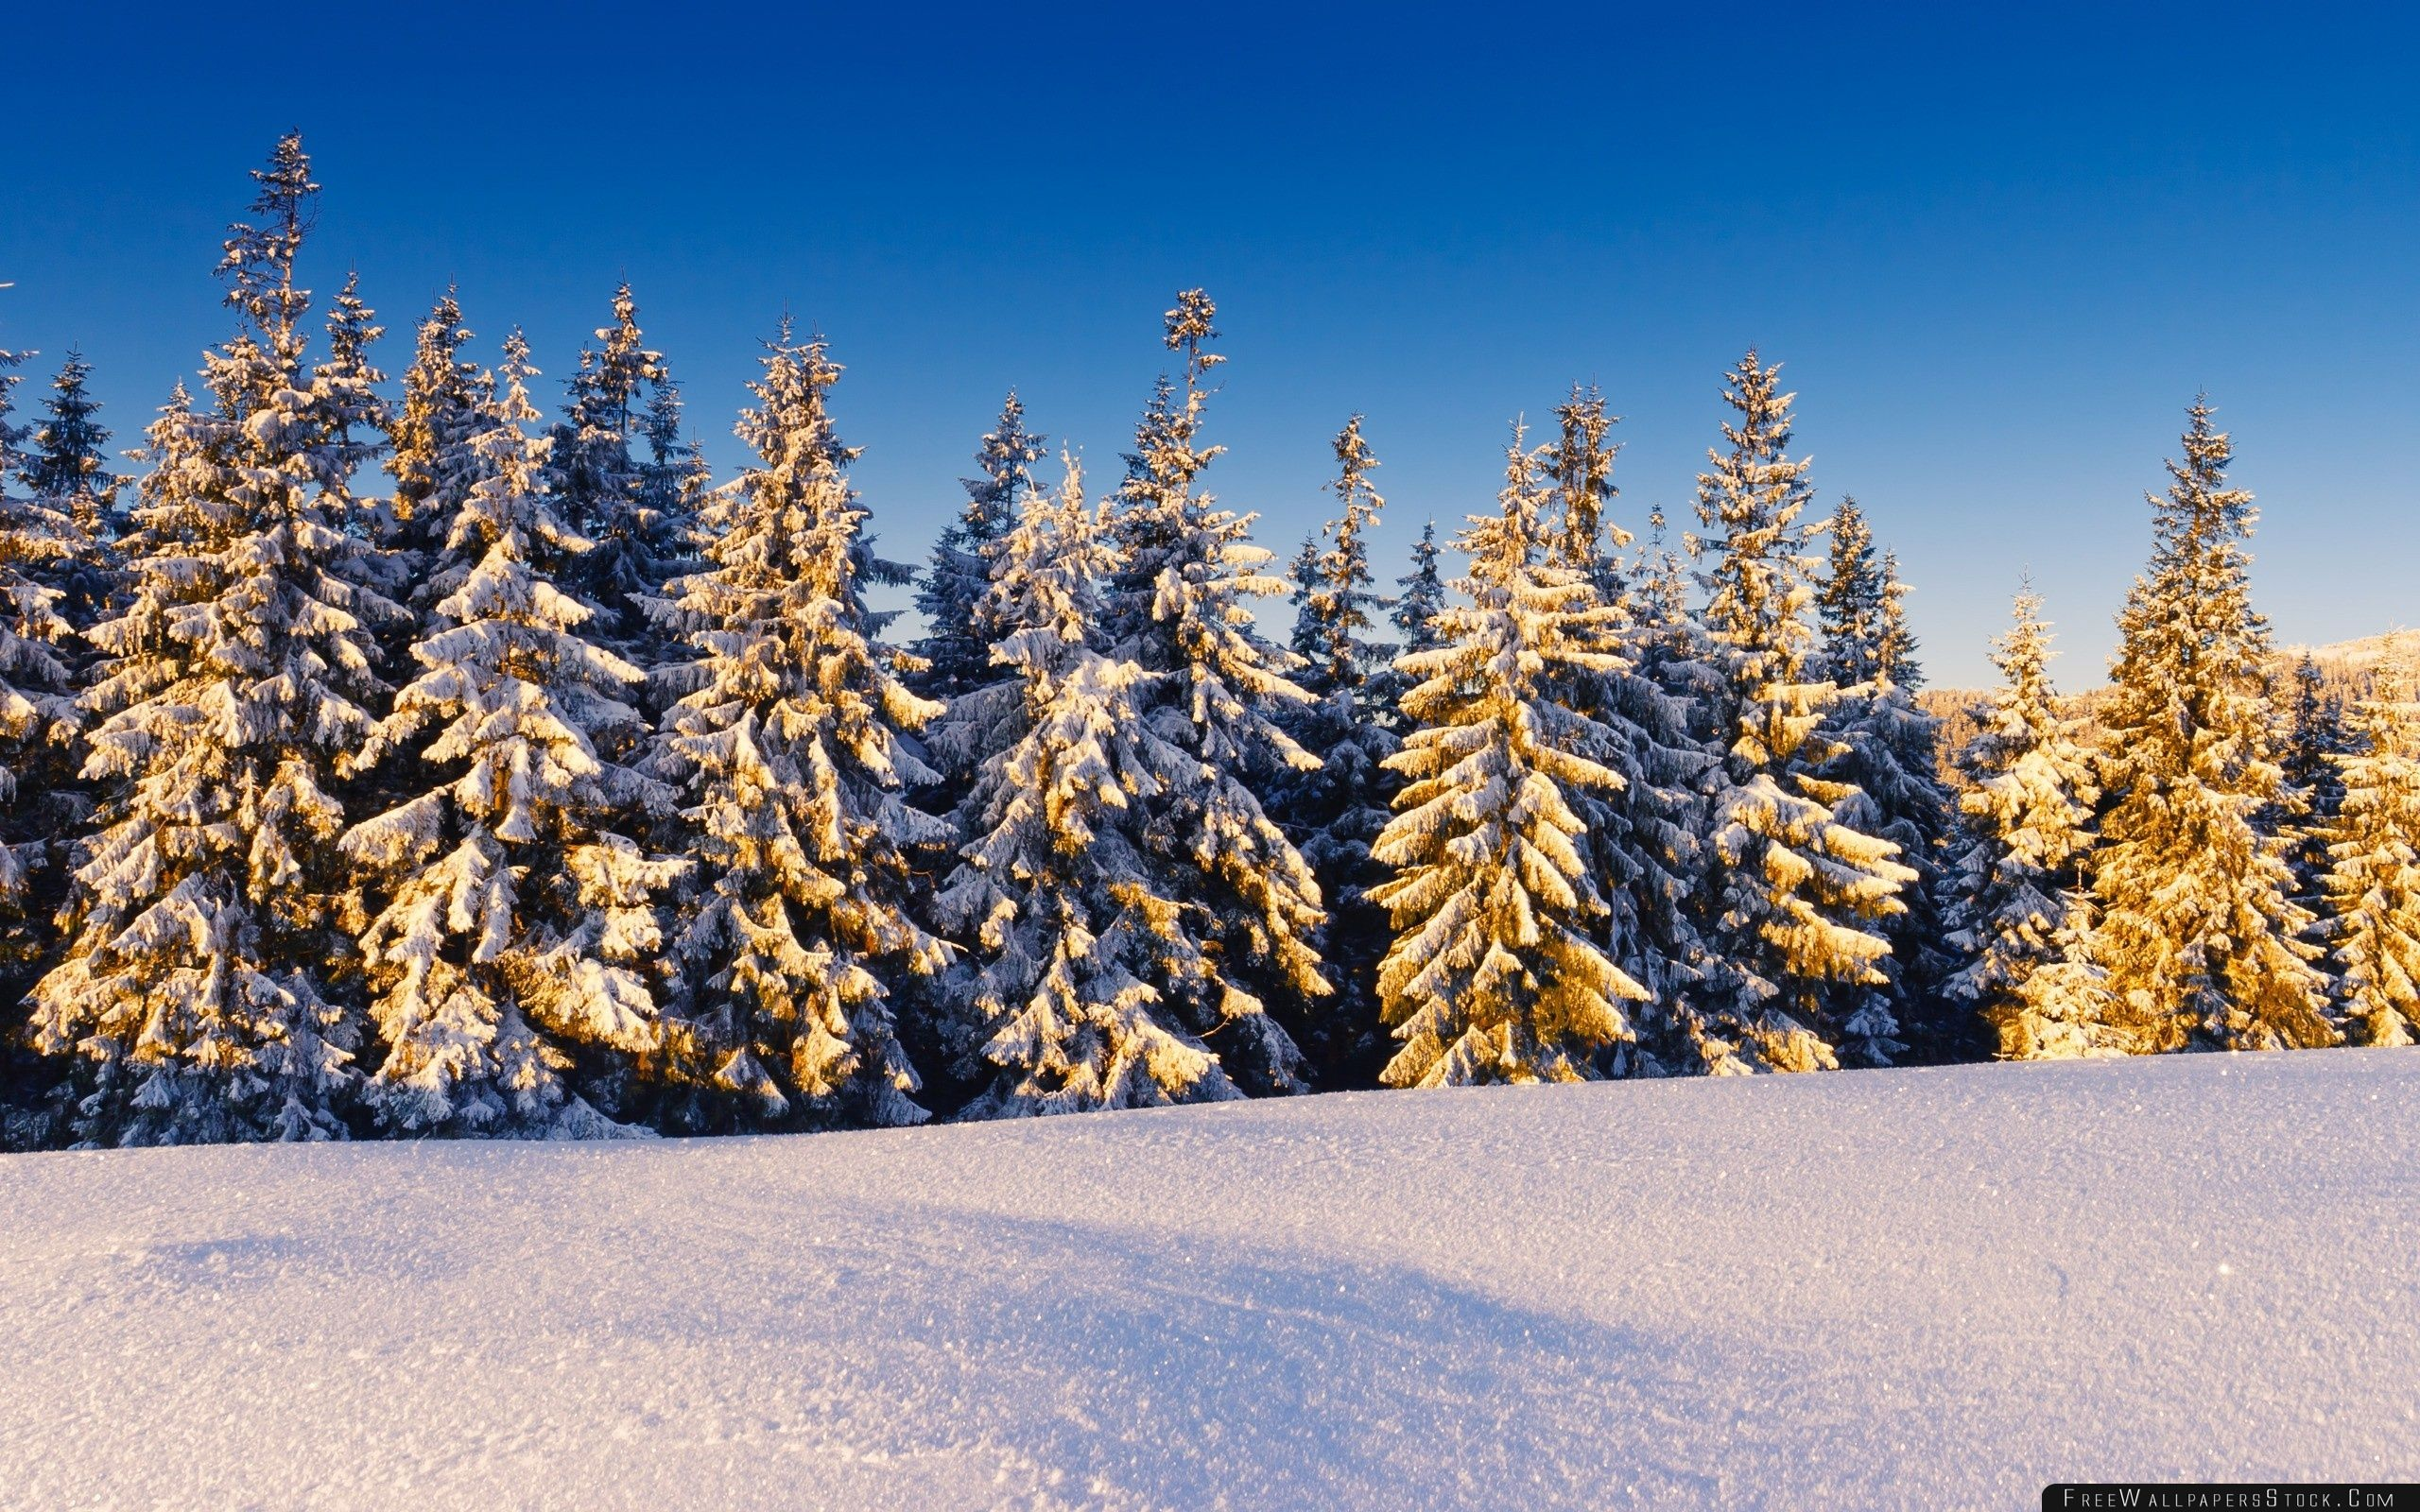 Download Free Wallpaper Spruce Trees Covered   Snow